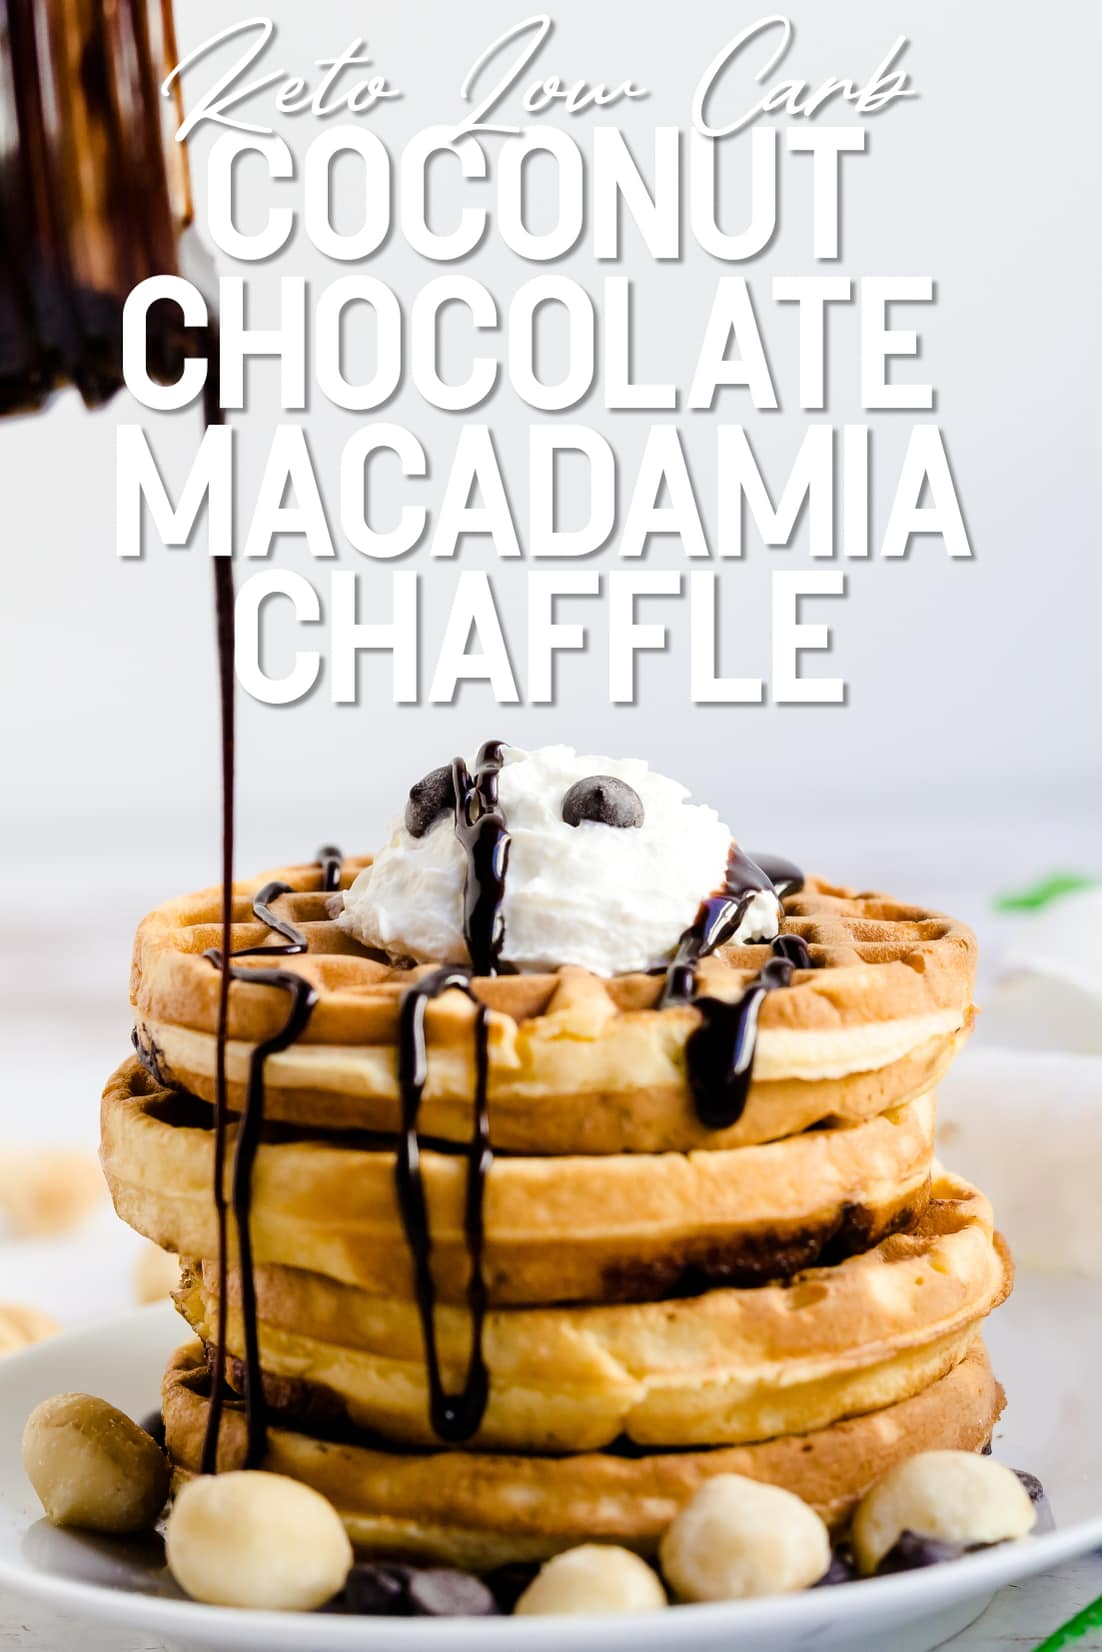 Keto chocolate syurp rbeing drizzled on top of coconut chocolate chip macadamia nut chaffle